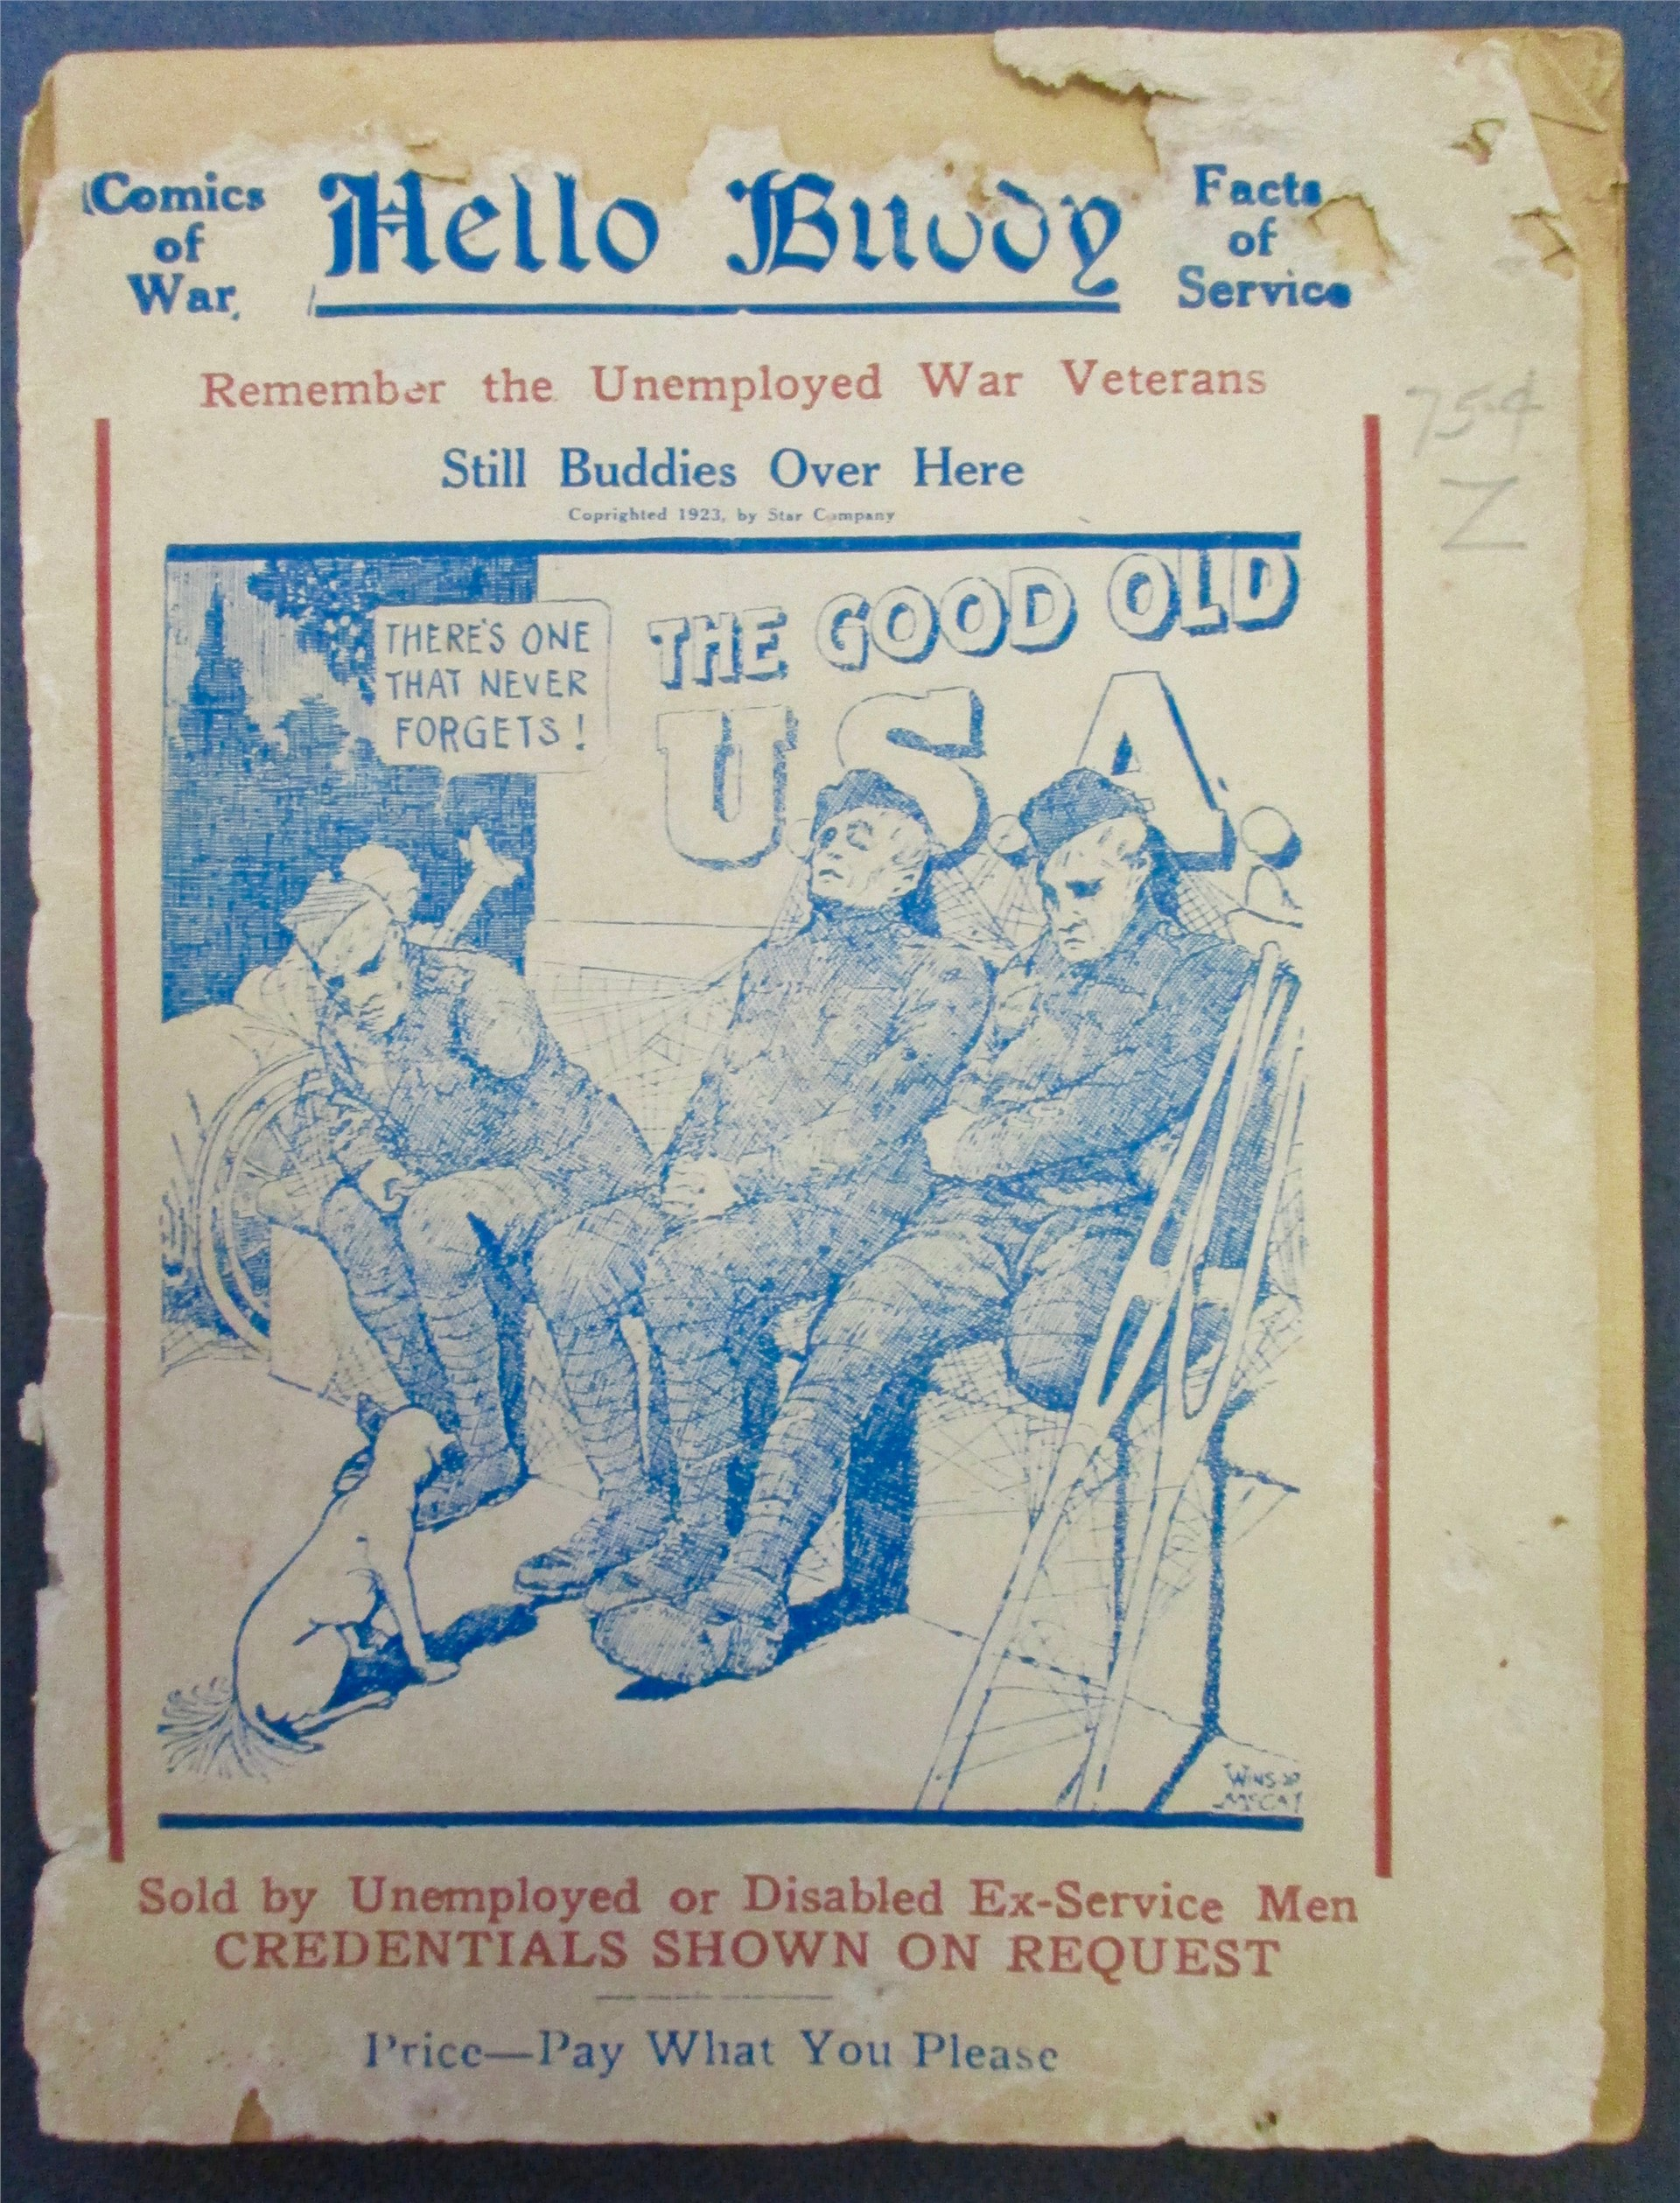 World War I exhibit: Museum artifact: Comic of War